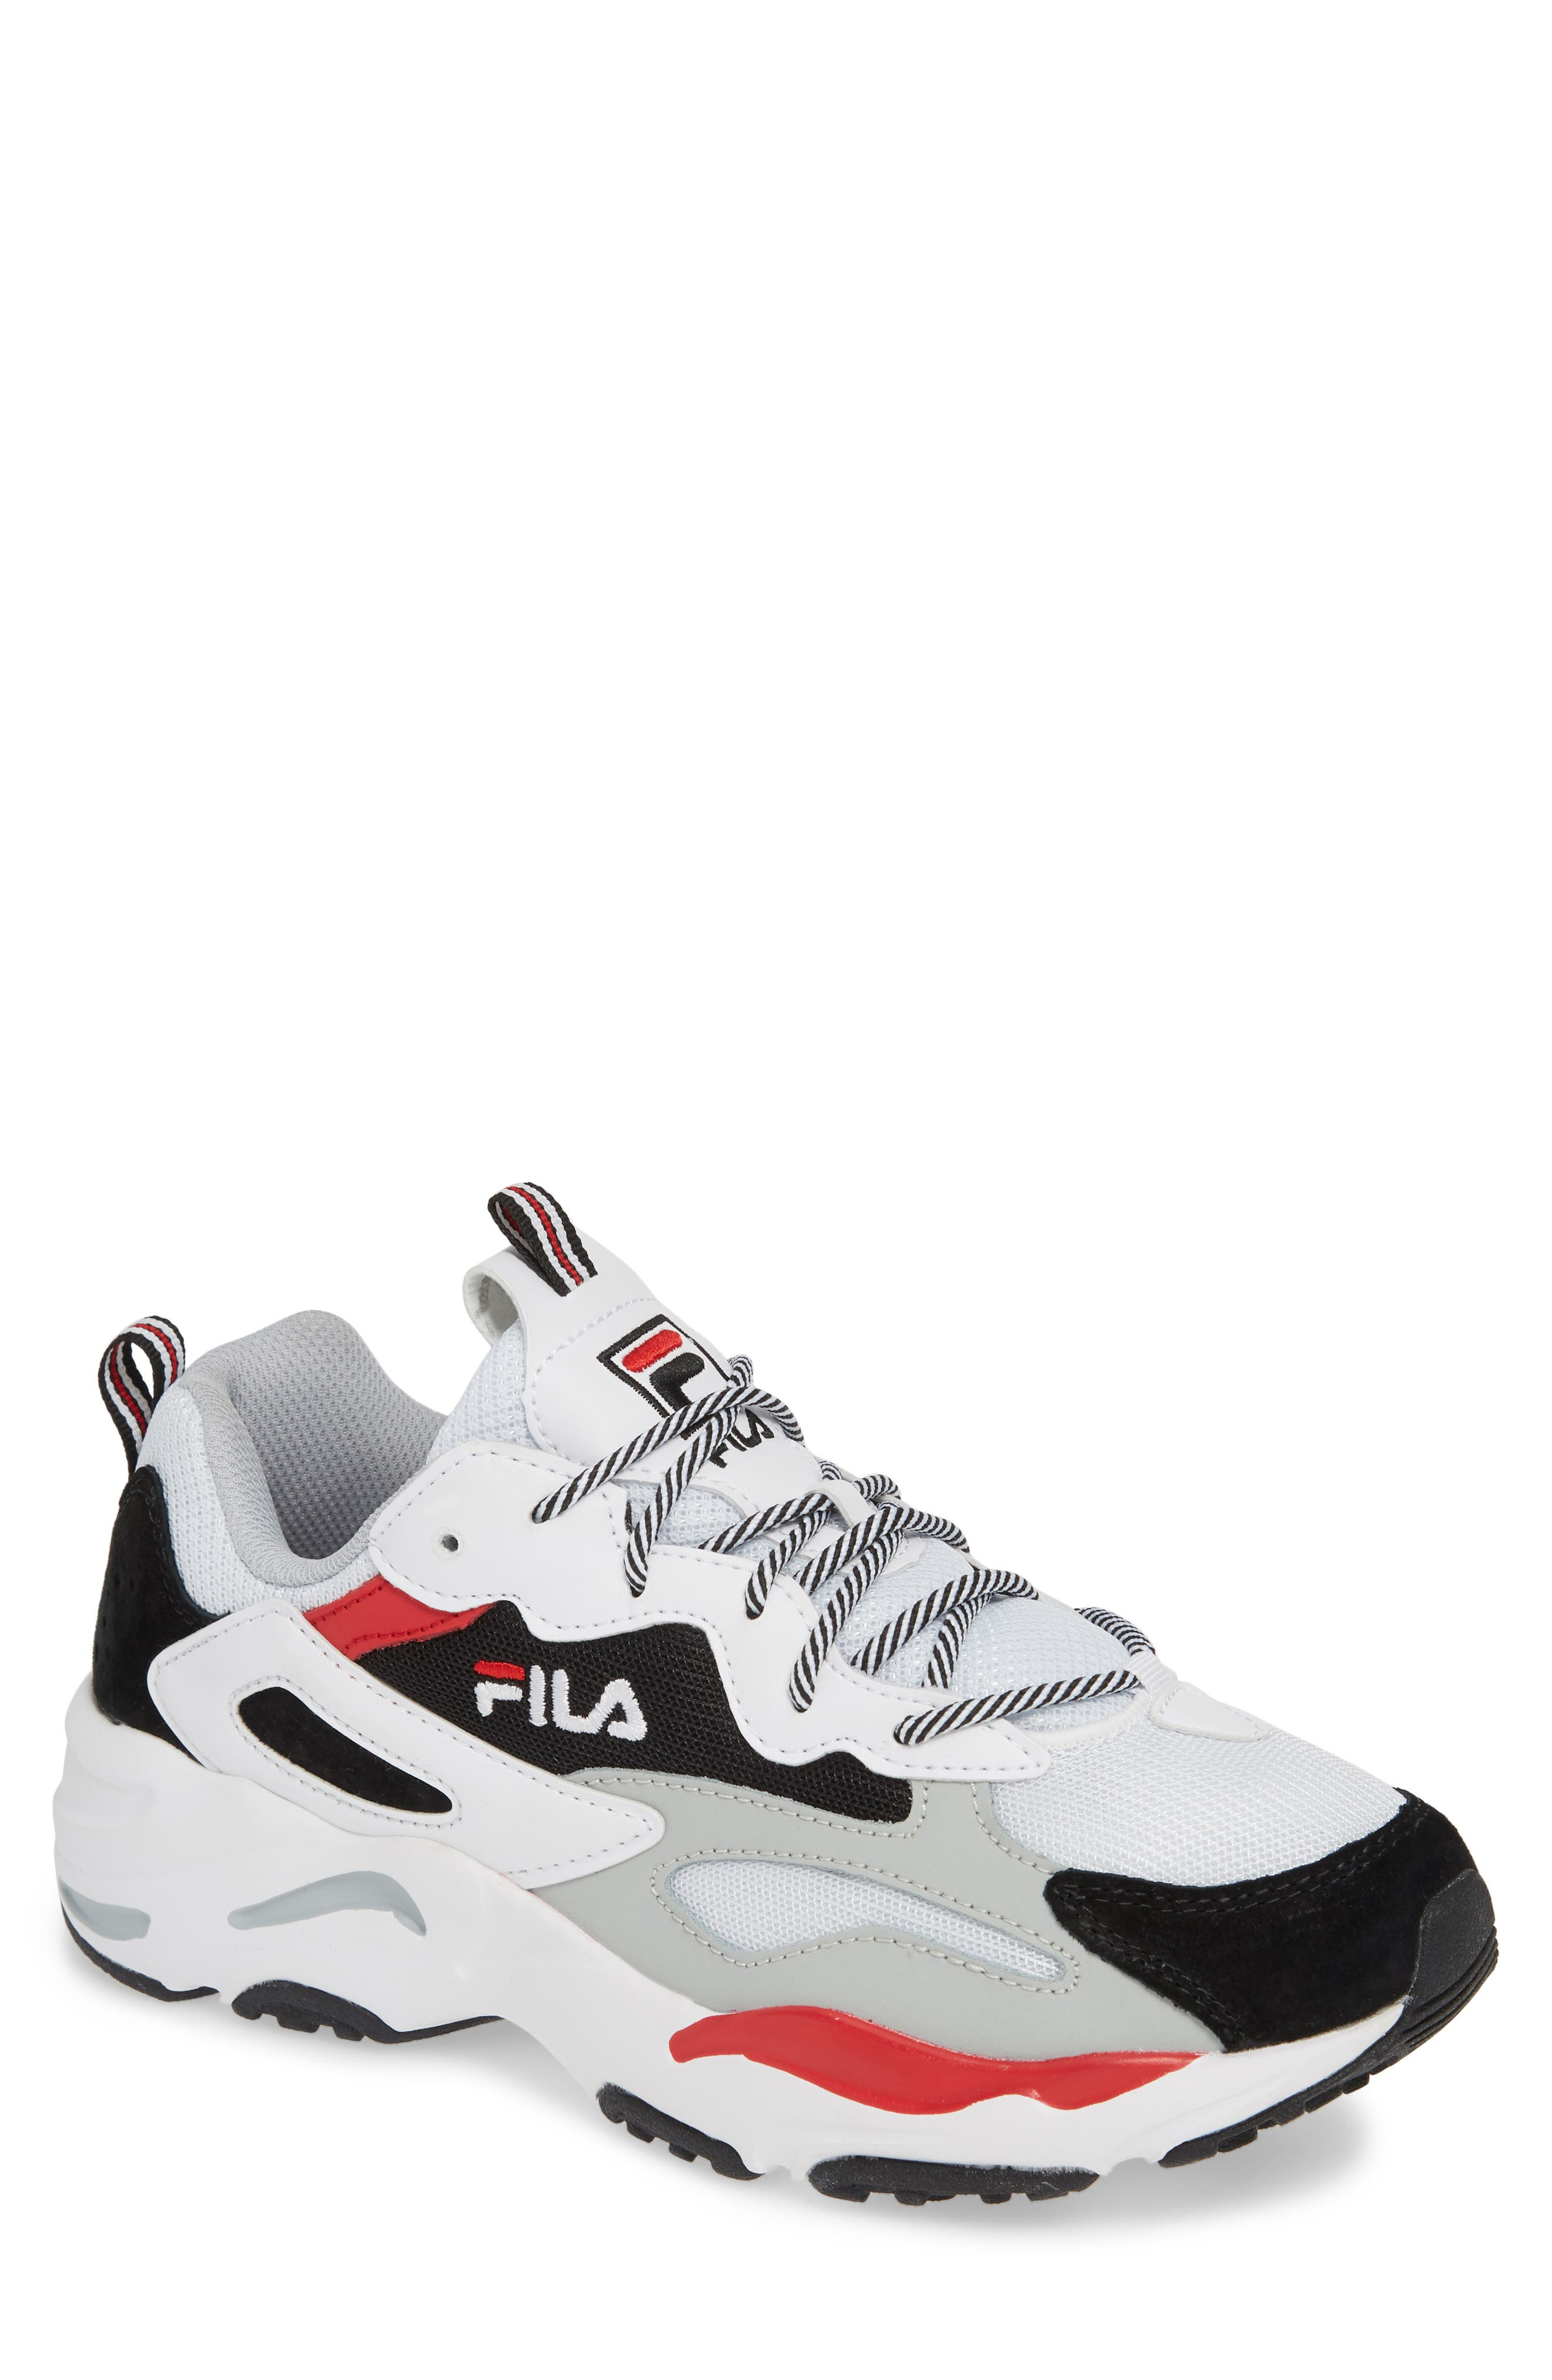 Ray Tracer Sneaker, Main, color, WHITE/ BLACK